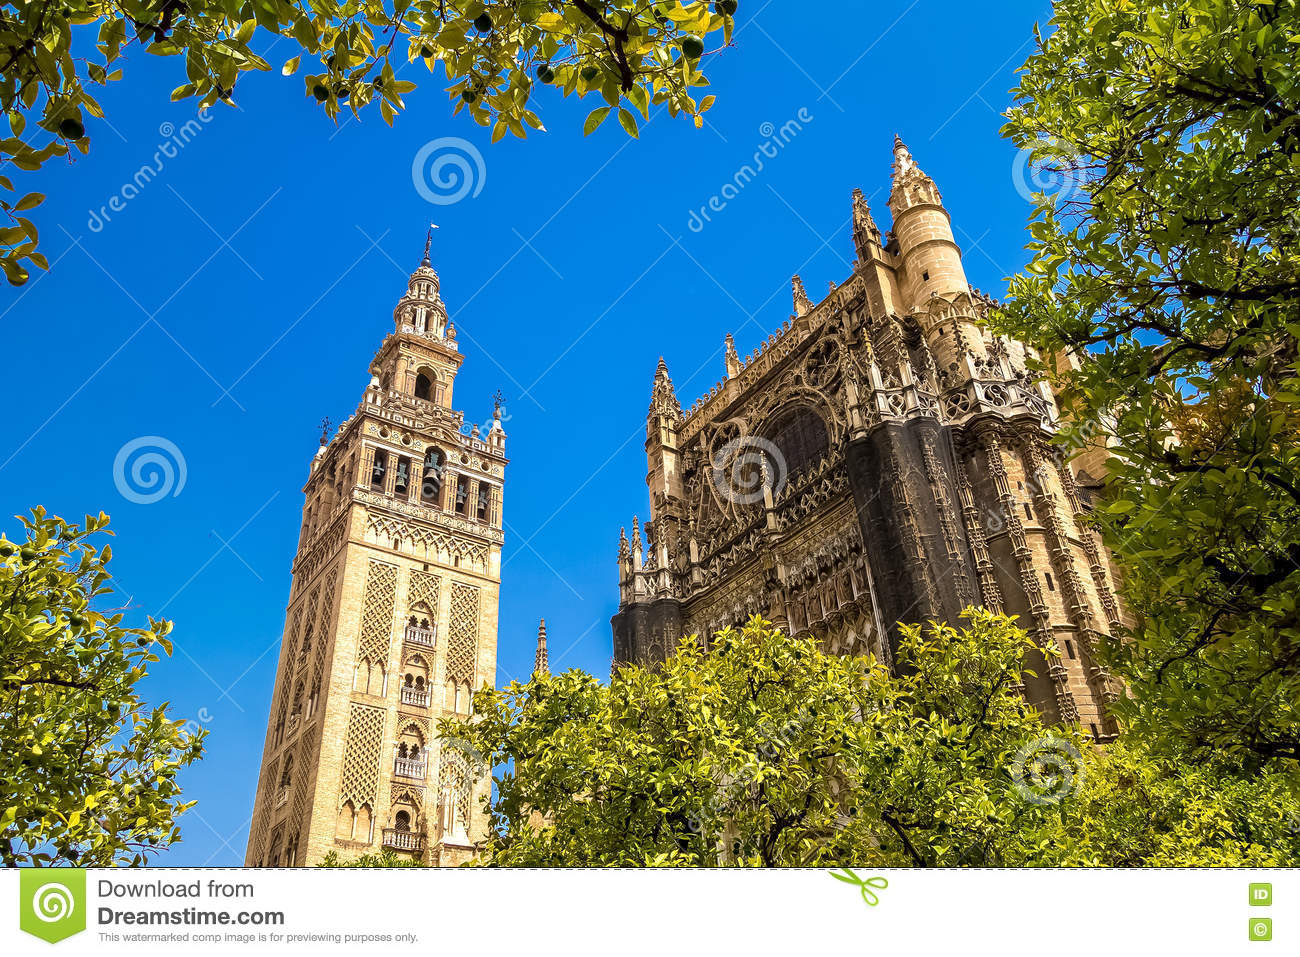 Giralda and roof of the Sevilla Cathedral